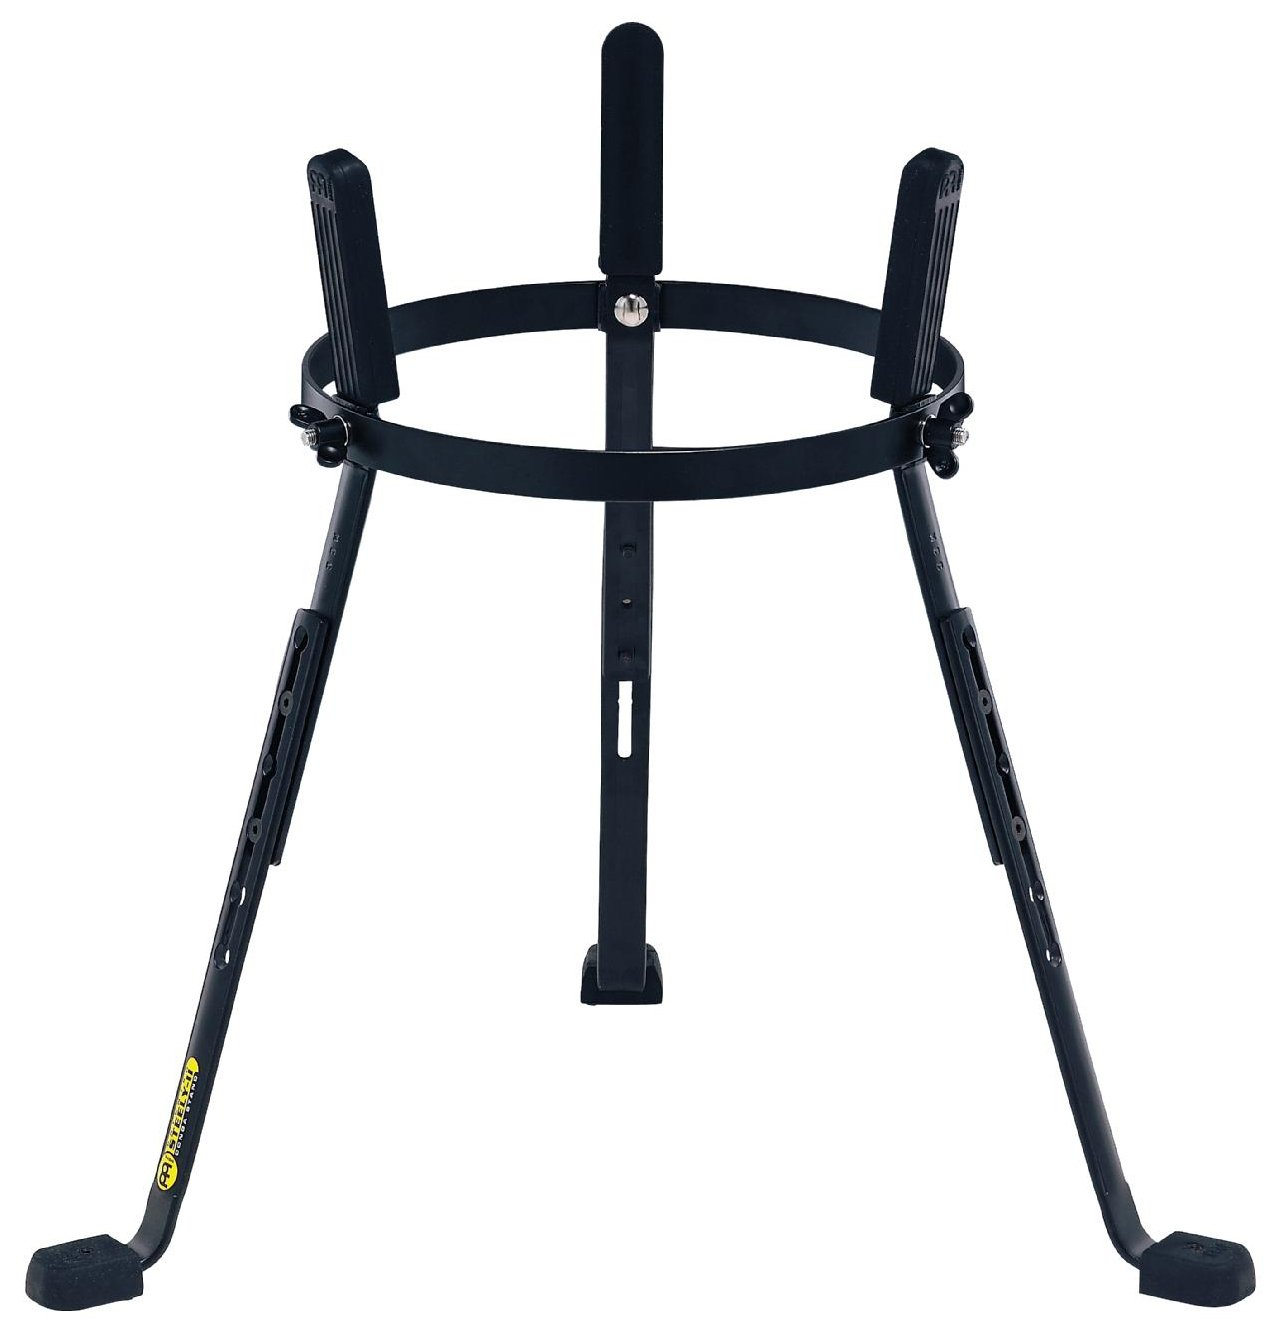 Meinl Percussion ST-MCC1134BK Steely II Height Adjustable Stand for 11 3/4-Inch MEINL MCC Congas, Black